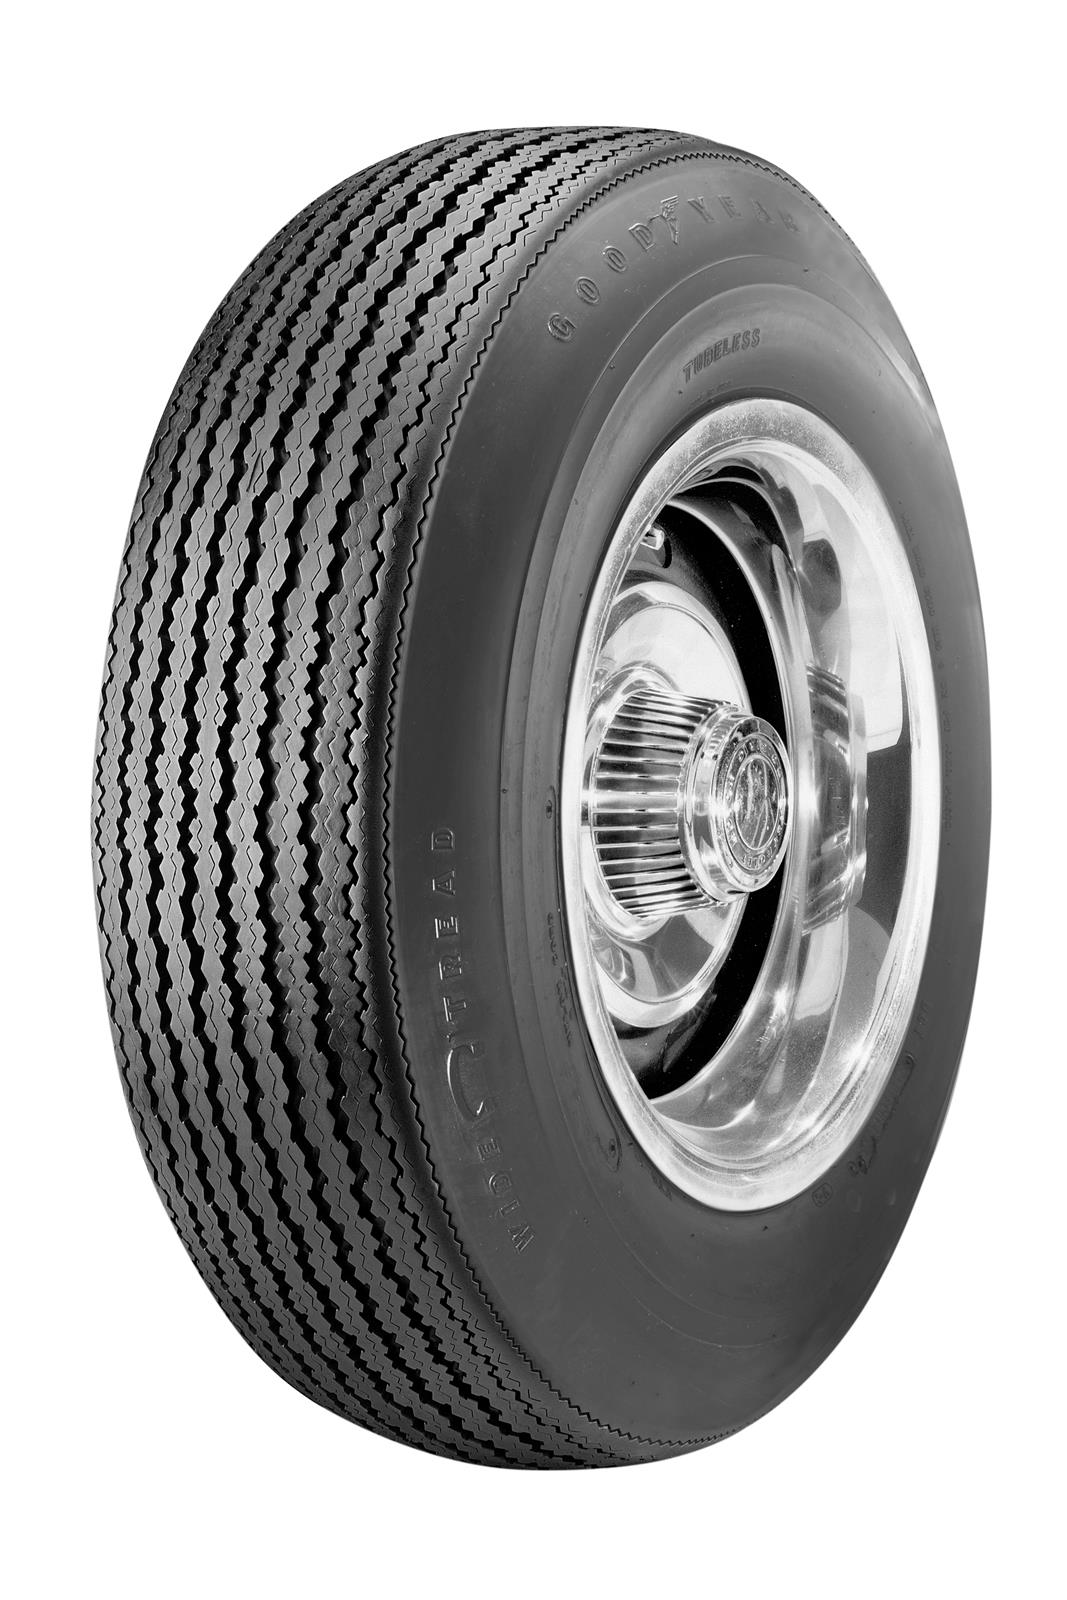 Kelsey Tire Goodyear F70/15 Speedway Wide Tread Tires CB3HF